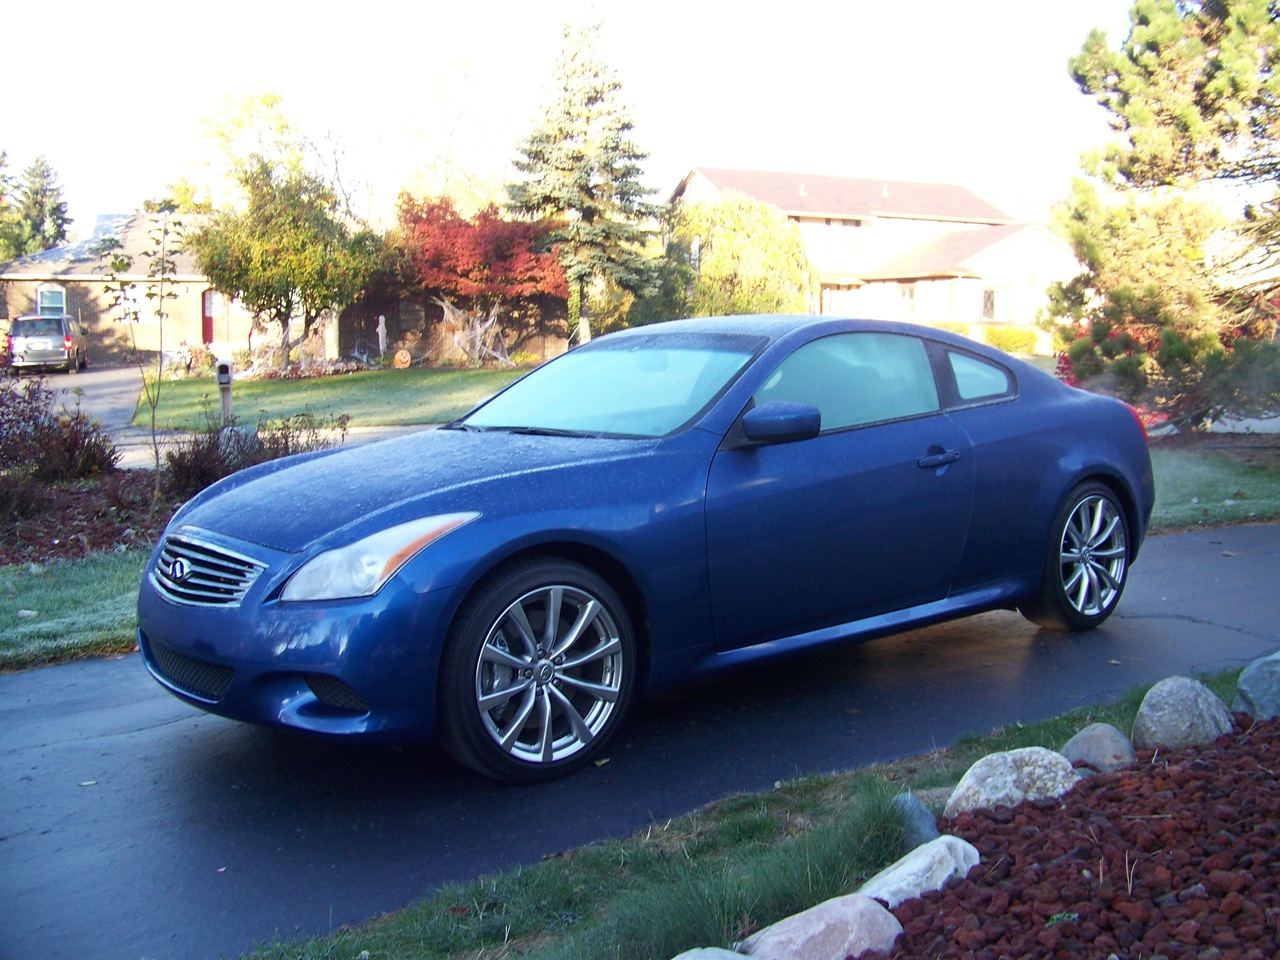 review 2010 infiniti g37s a road trip five years in the. Black Bedroom Furniture Sets. Home Design Ideas